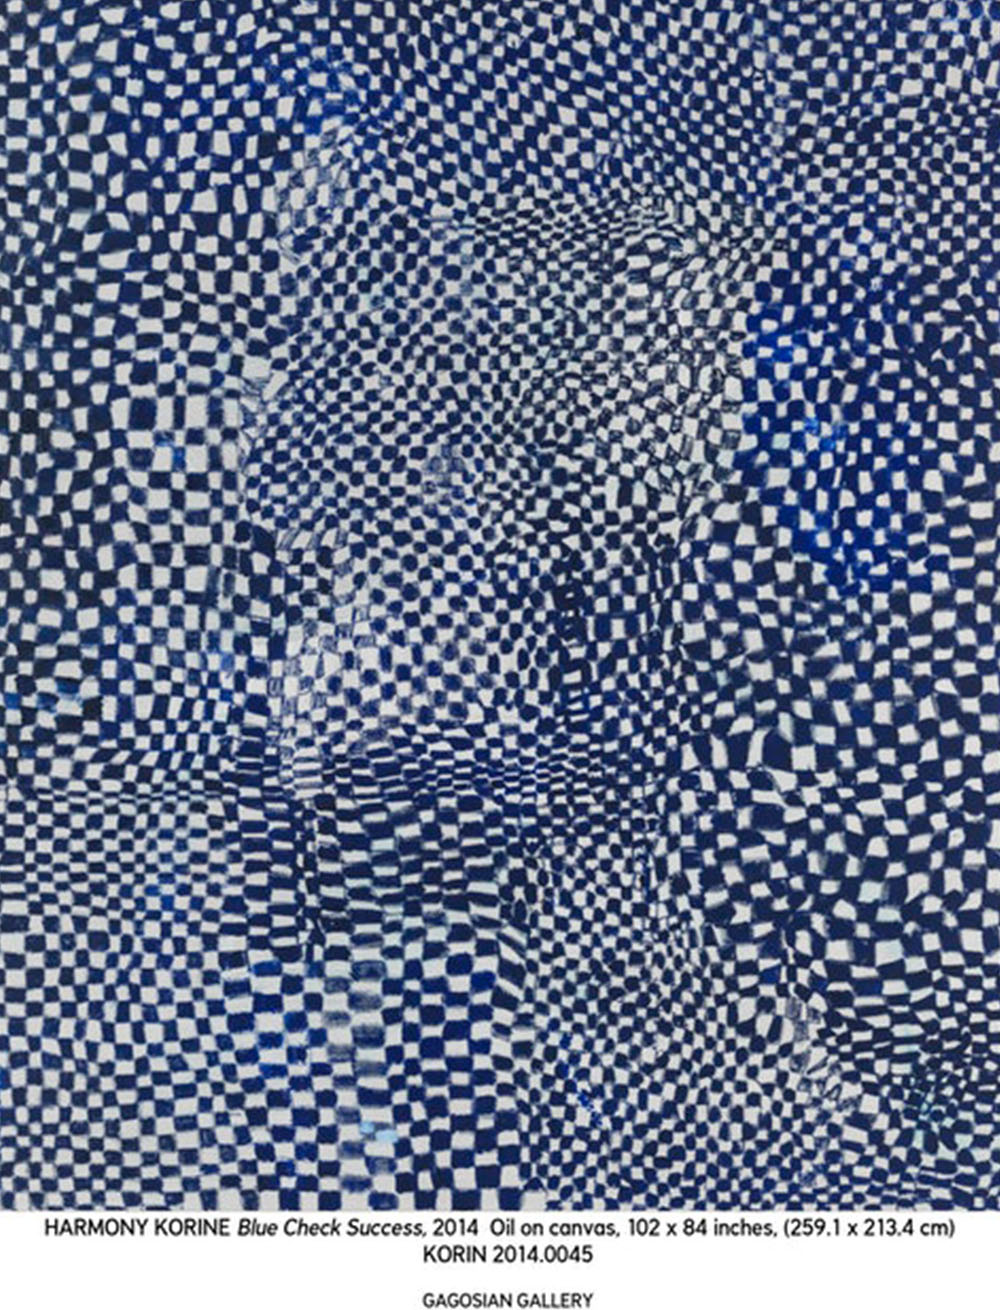 painting by harmony korine blue check success, 2014 as featured on the PS1  Medium